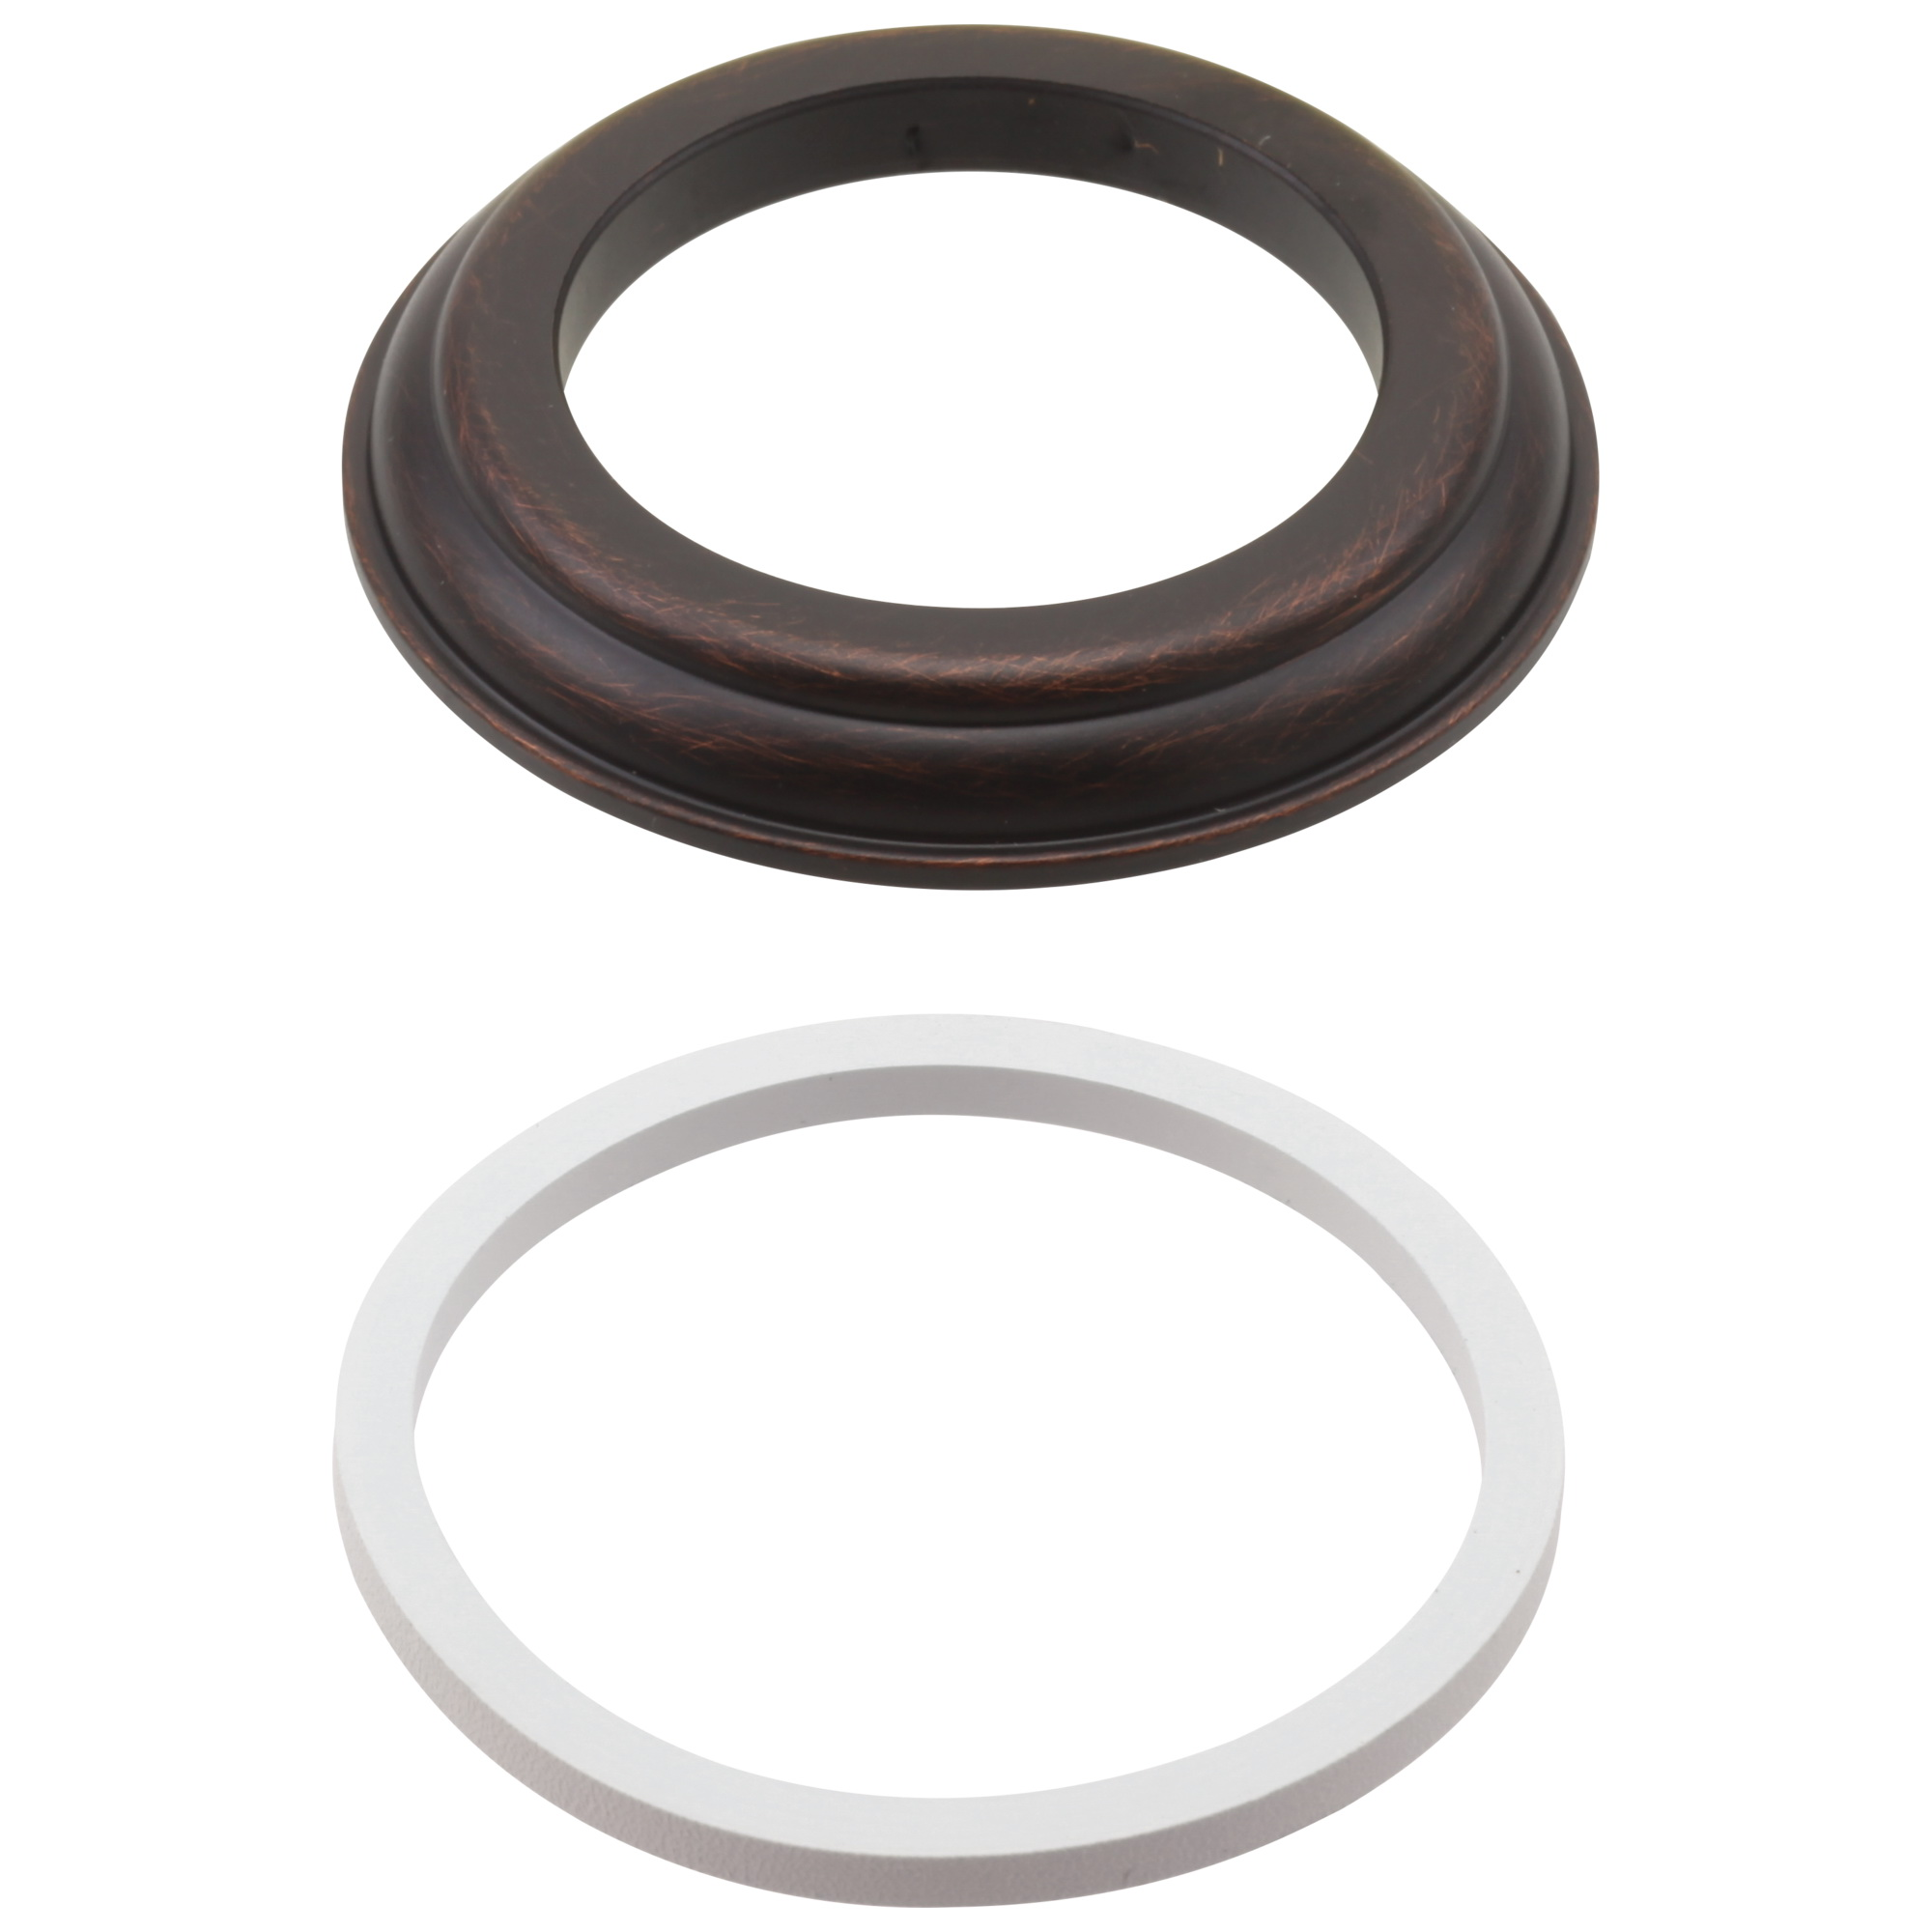 Brizo® RP23611RB Base With Gasket, Venetian Bronze